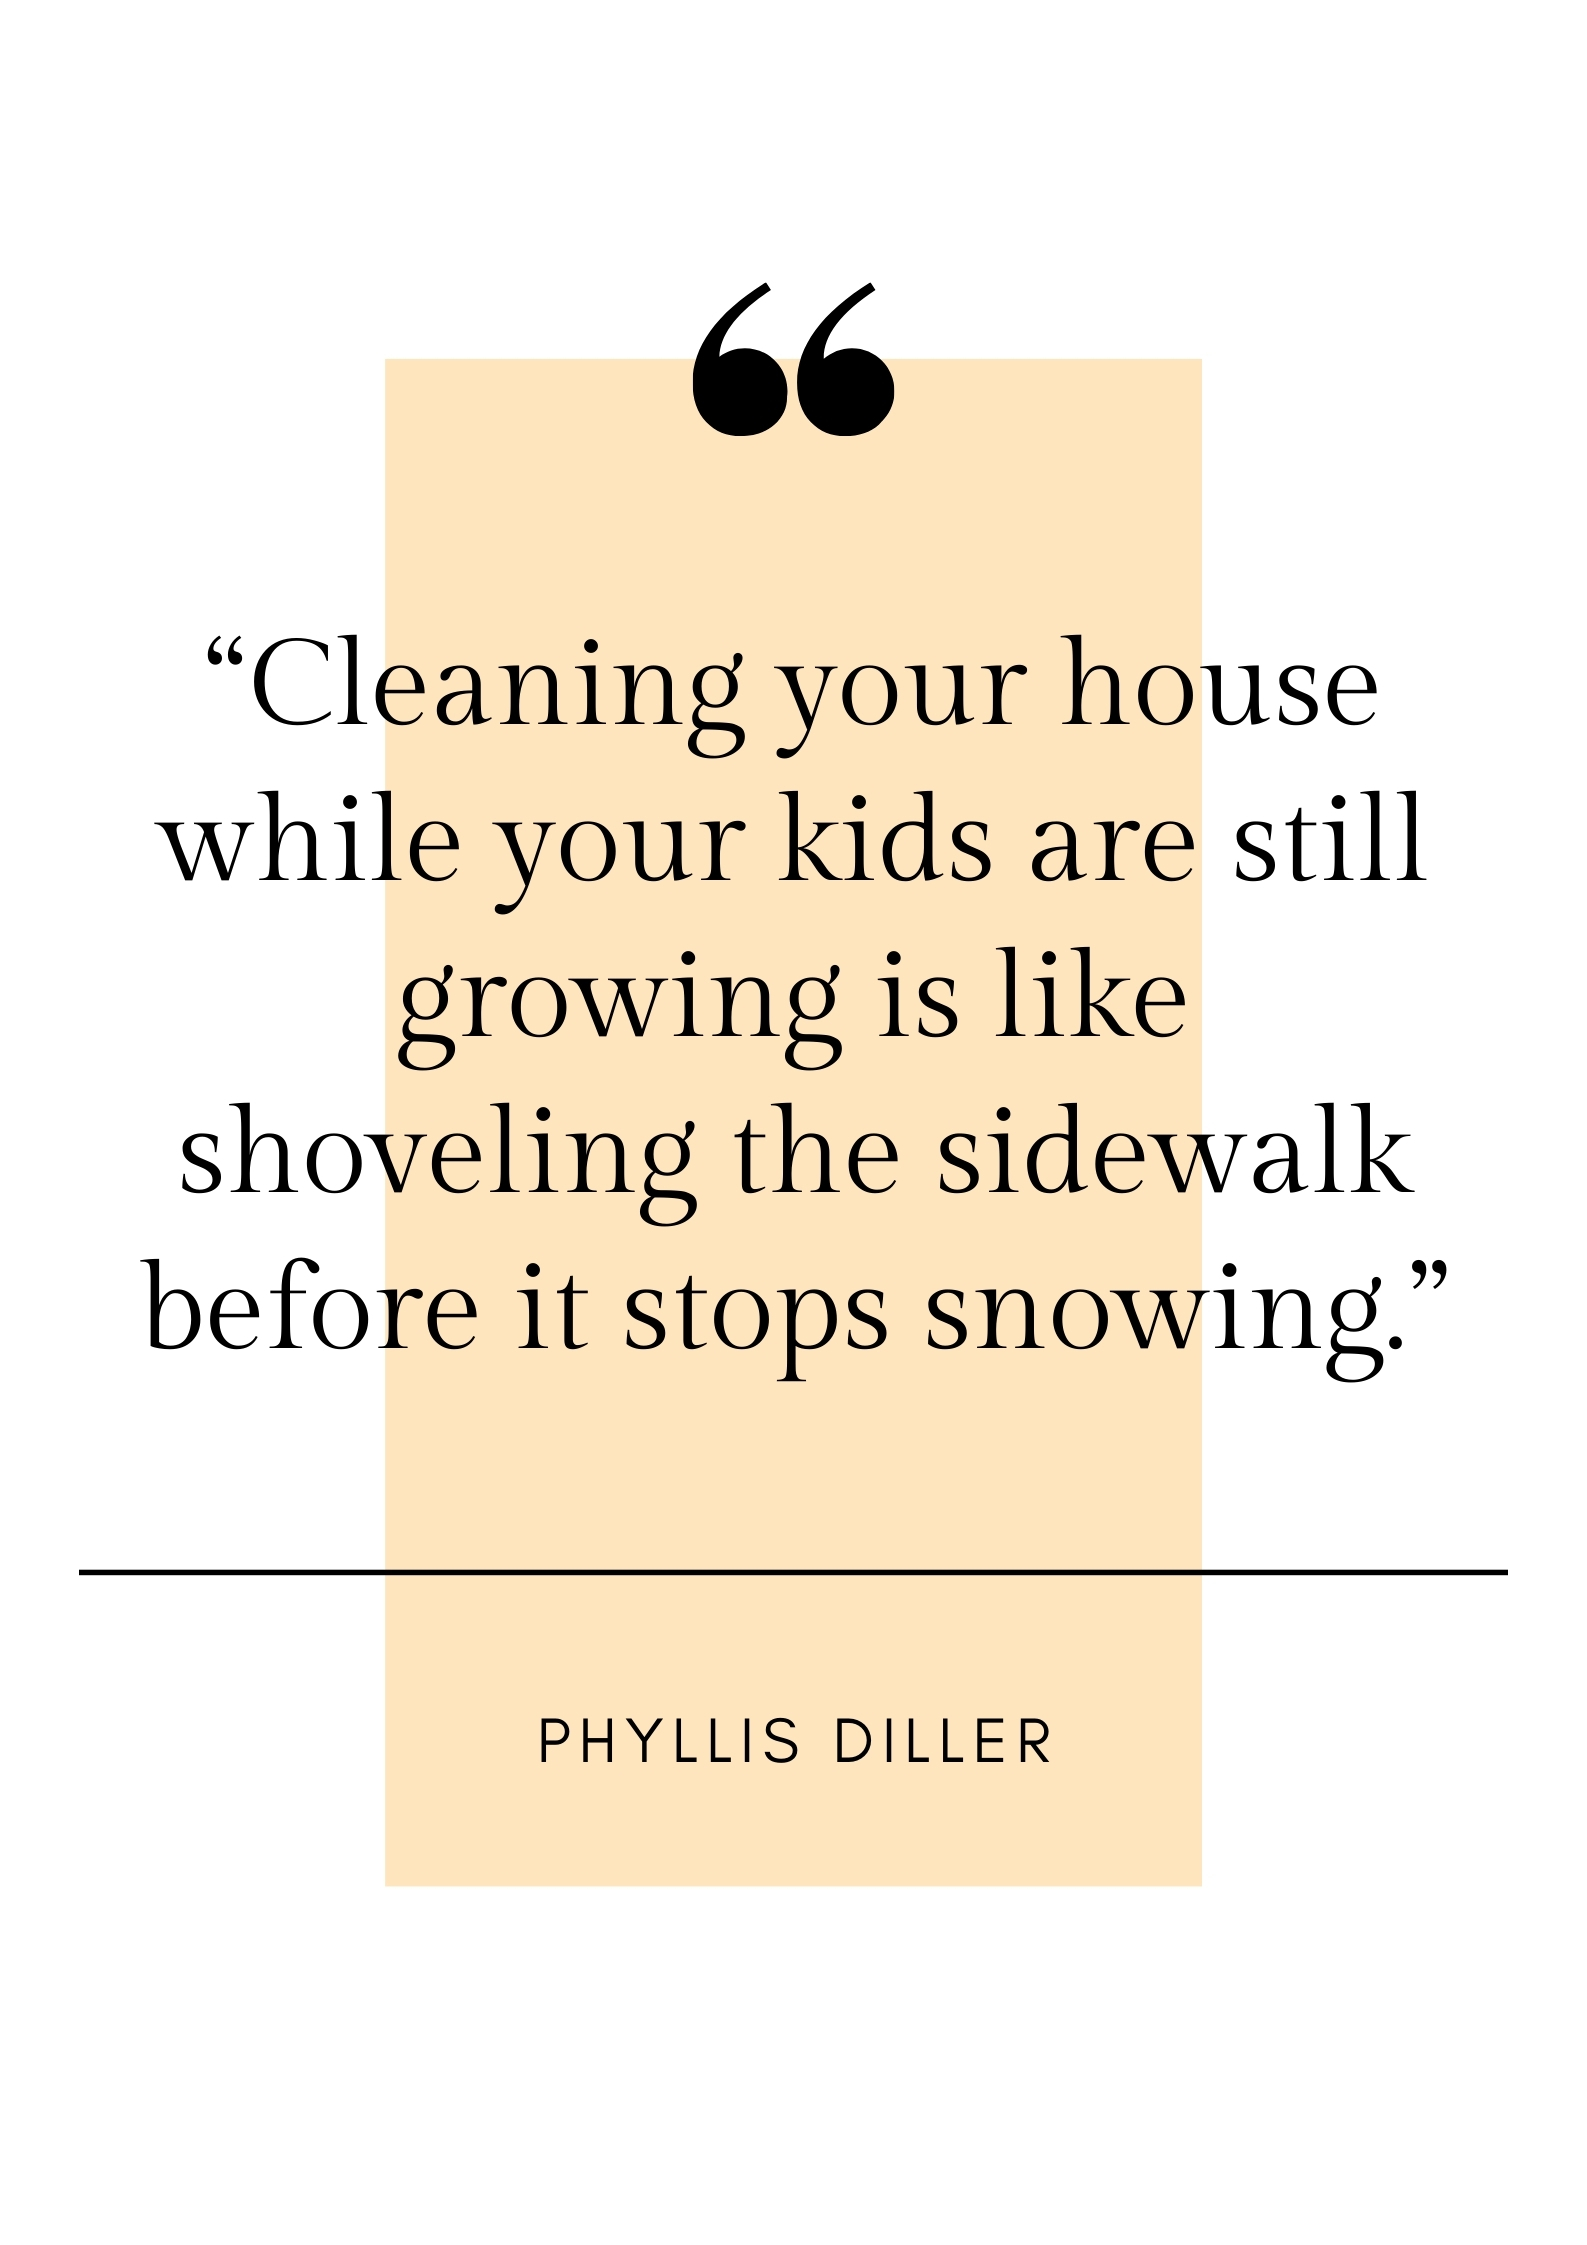 phyllis diller mom quote